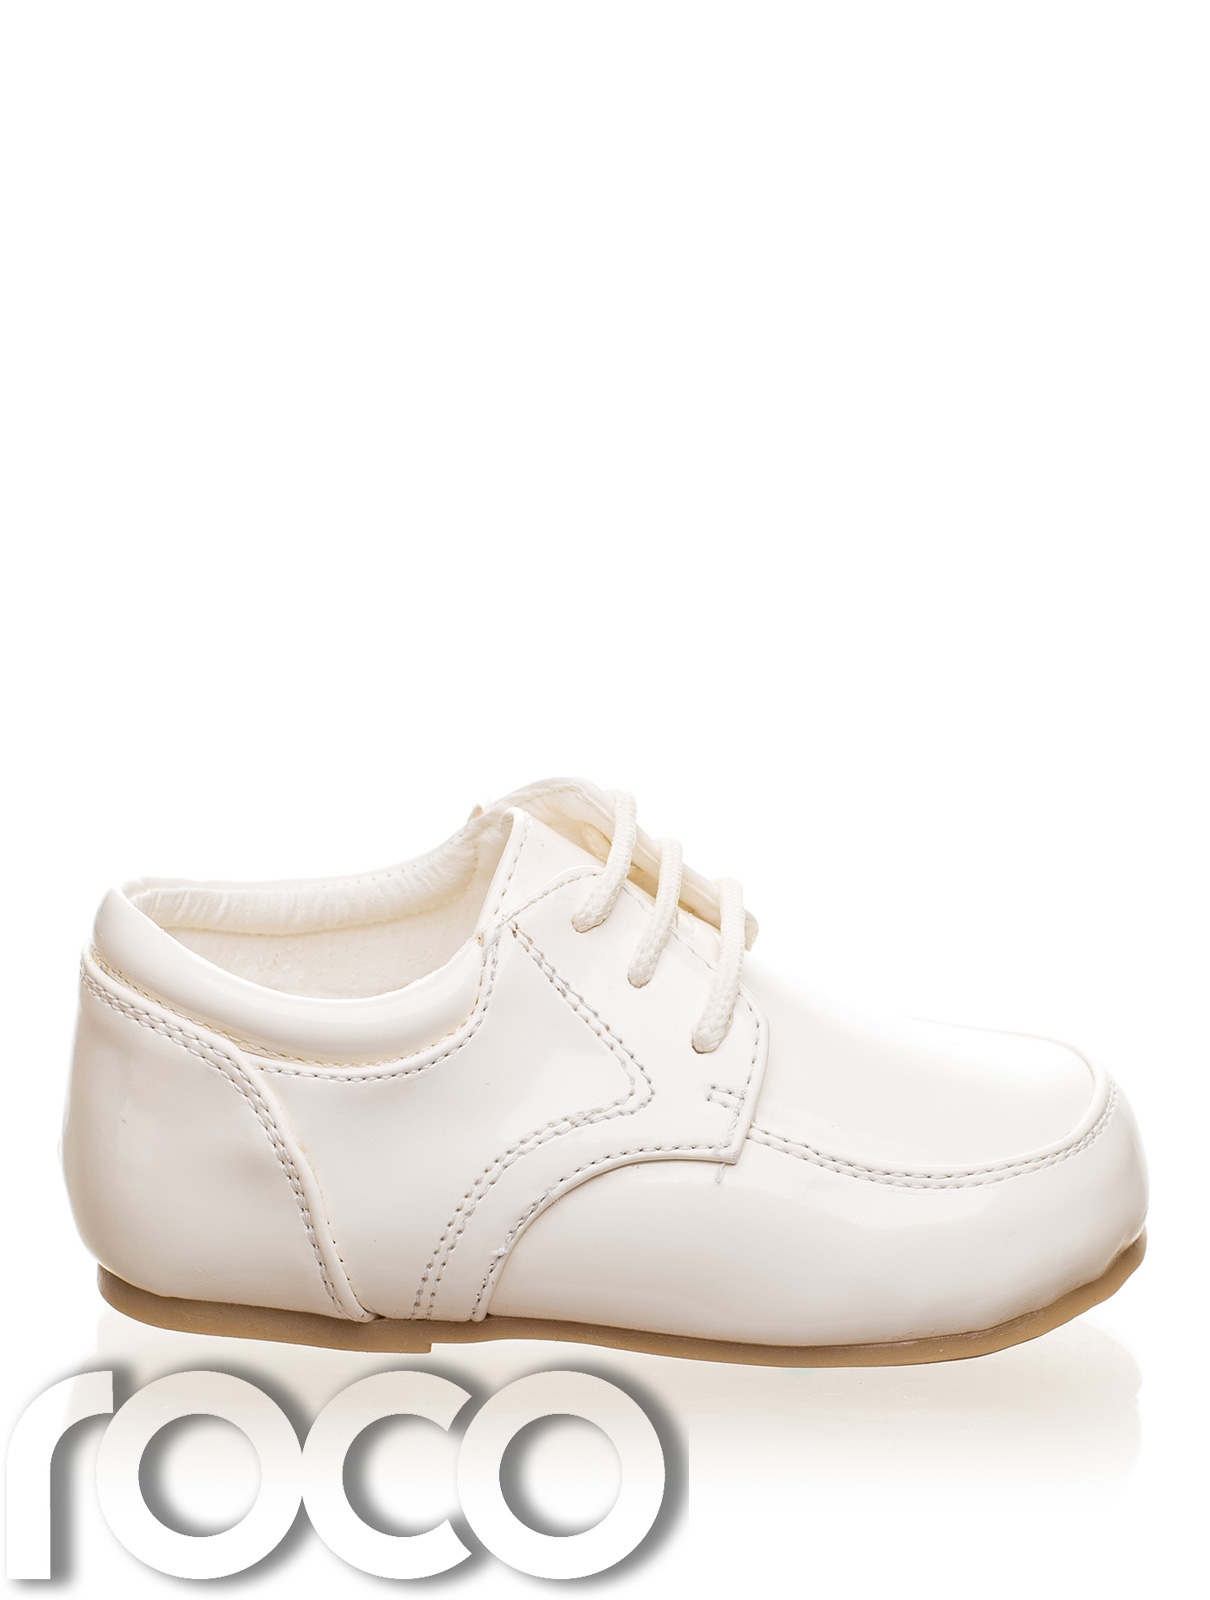 Childrens Baby Boys Cream Shoes Lace Up Wedding Page Boy